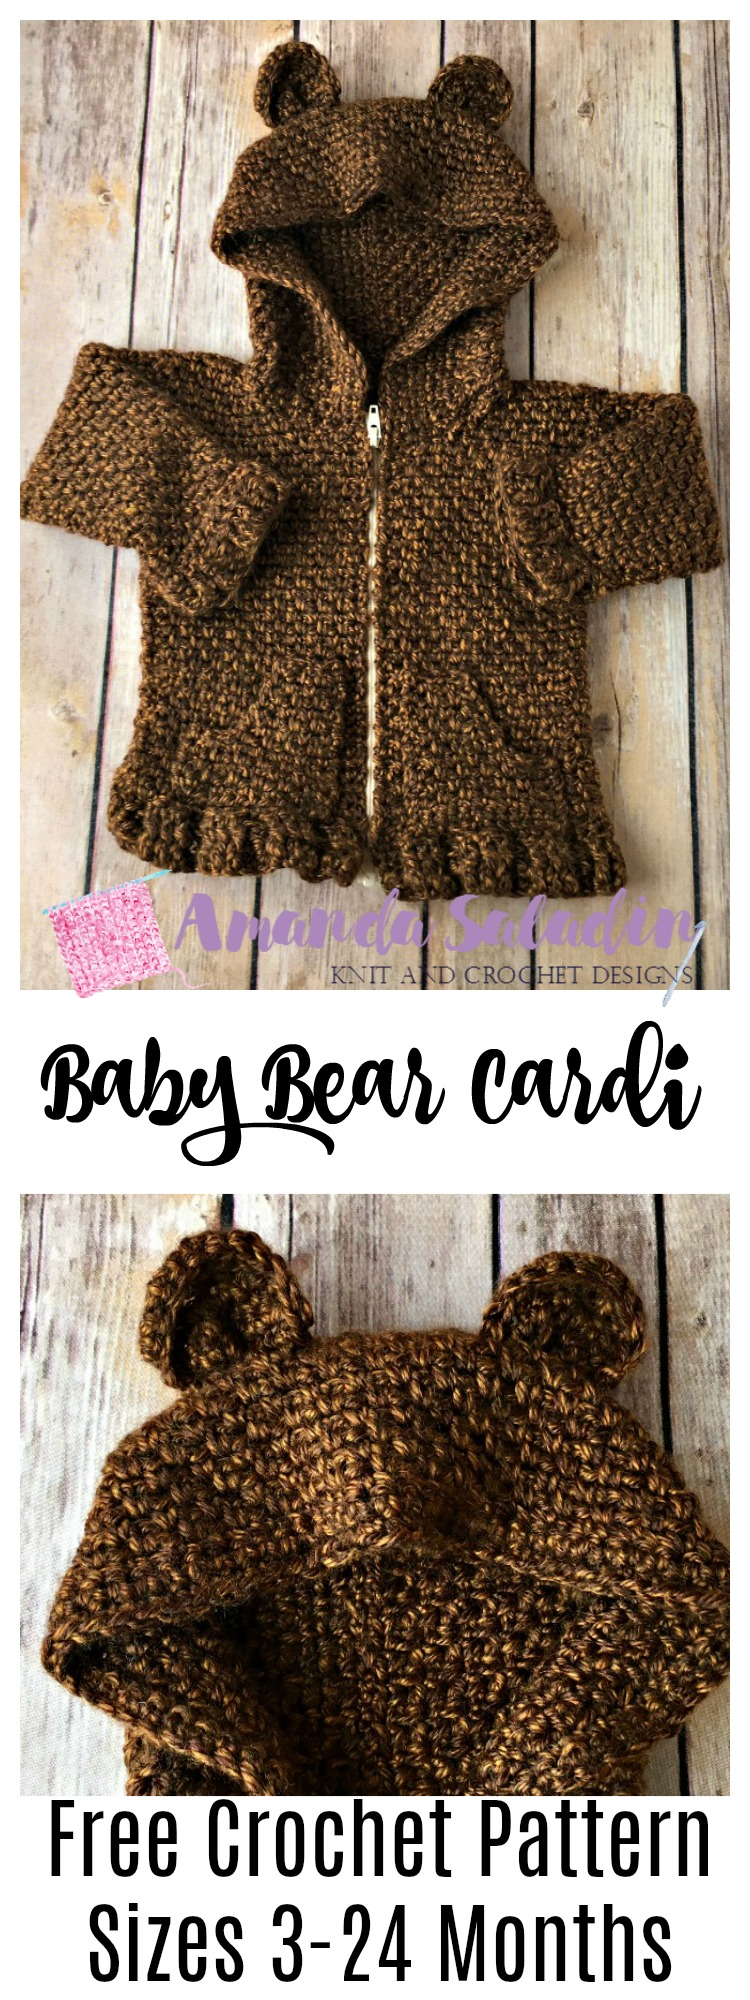 Free Crochet Pattern in Sizes 3-24 months